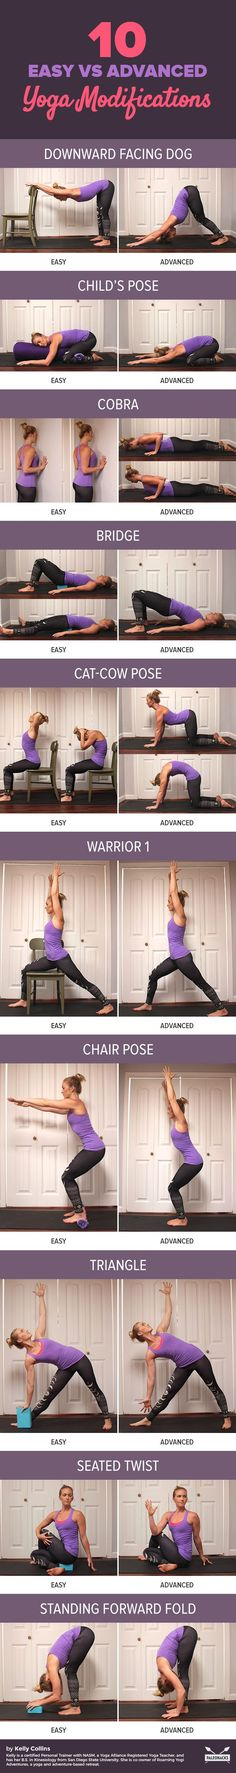 Yoga is all about adaptation. If you're having trouble getting into poses, here are a few tricks you can use to modify yoga poses to fit your comfort level. Get all yoga poses here: http://paleo.co/easyyogamodifications